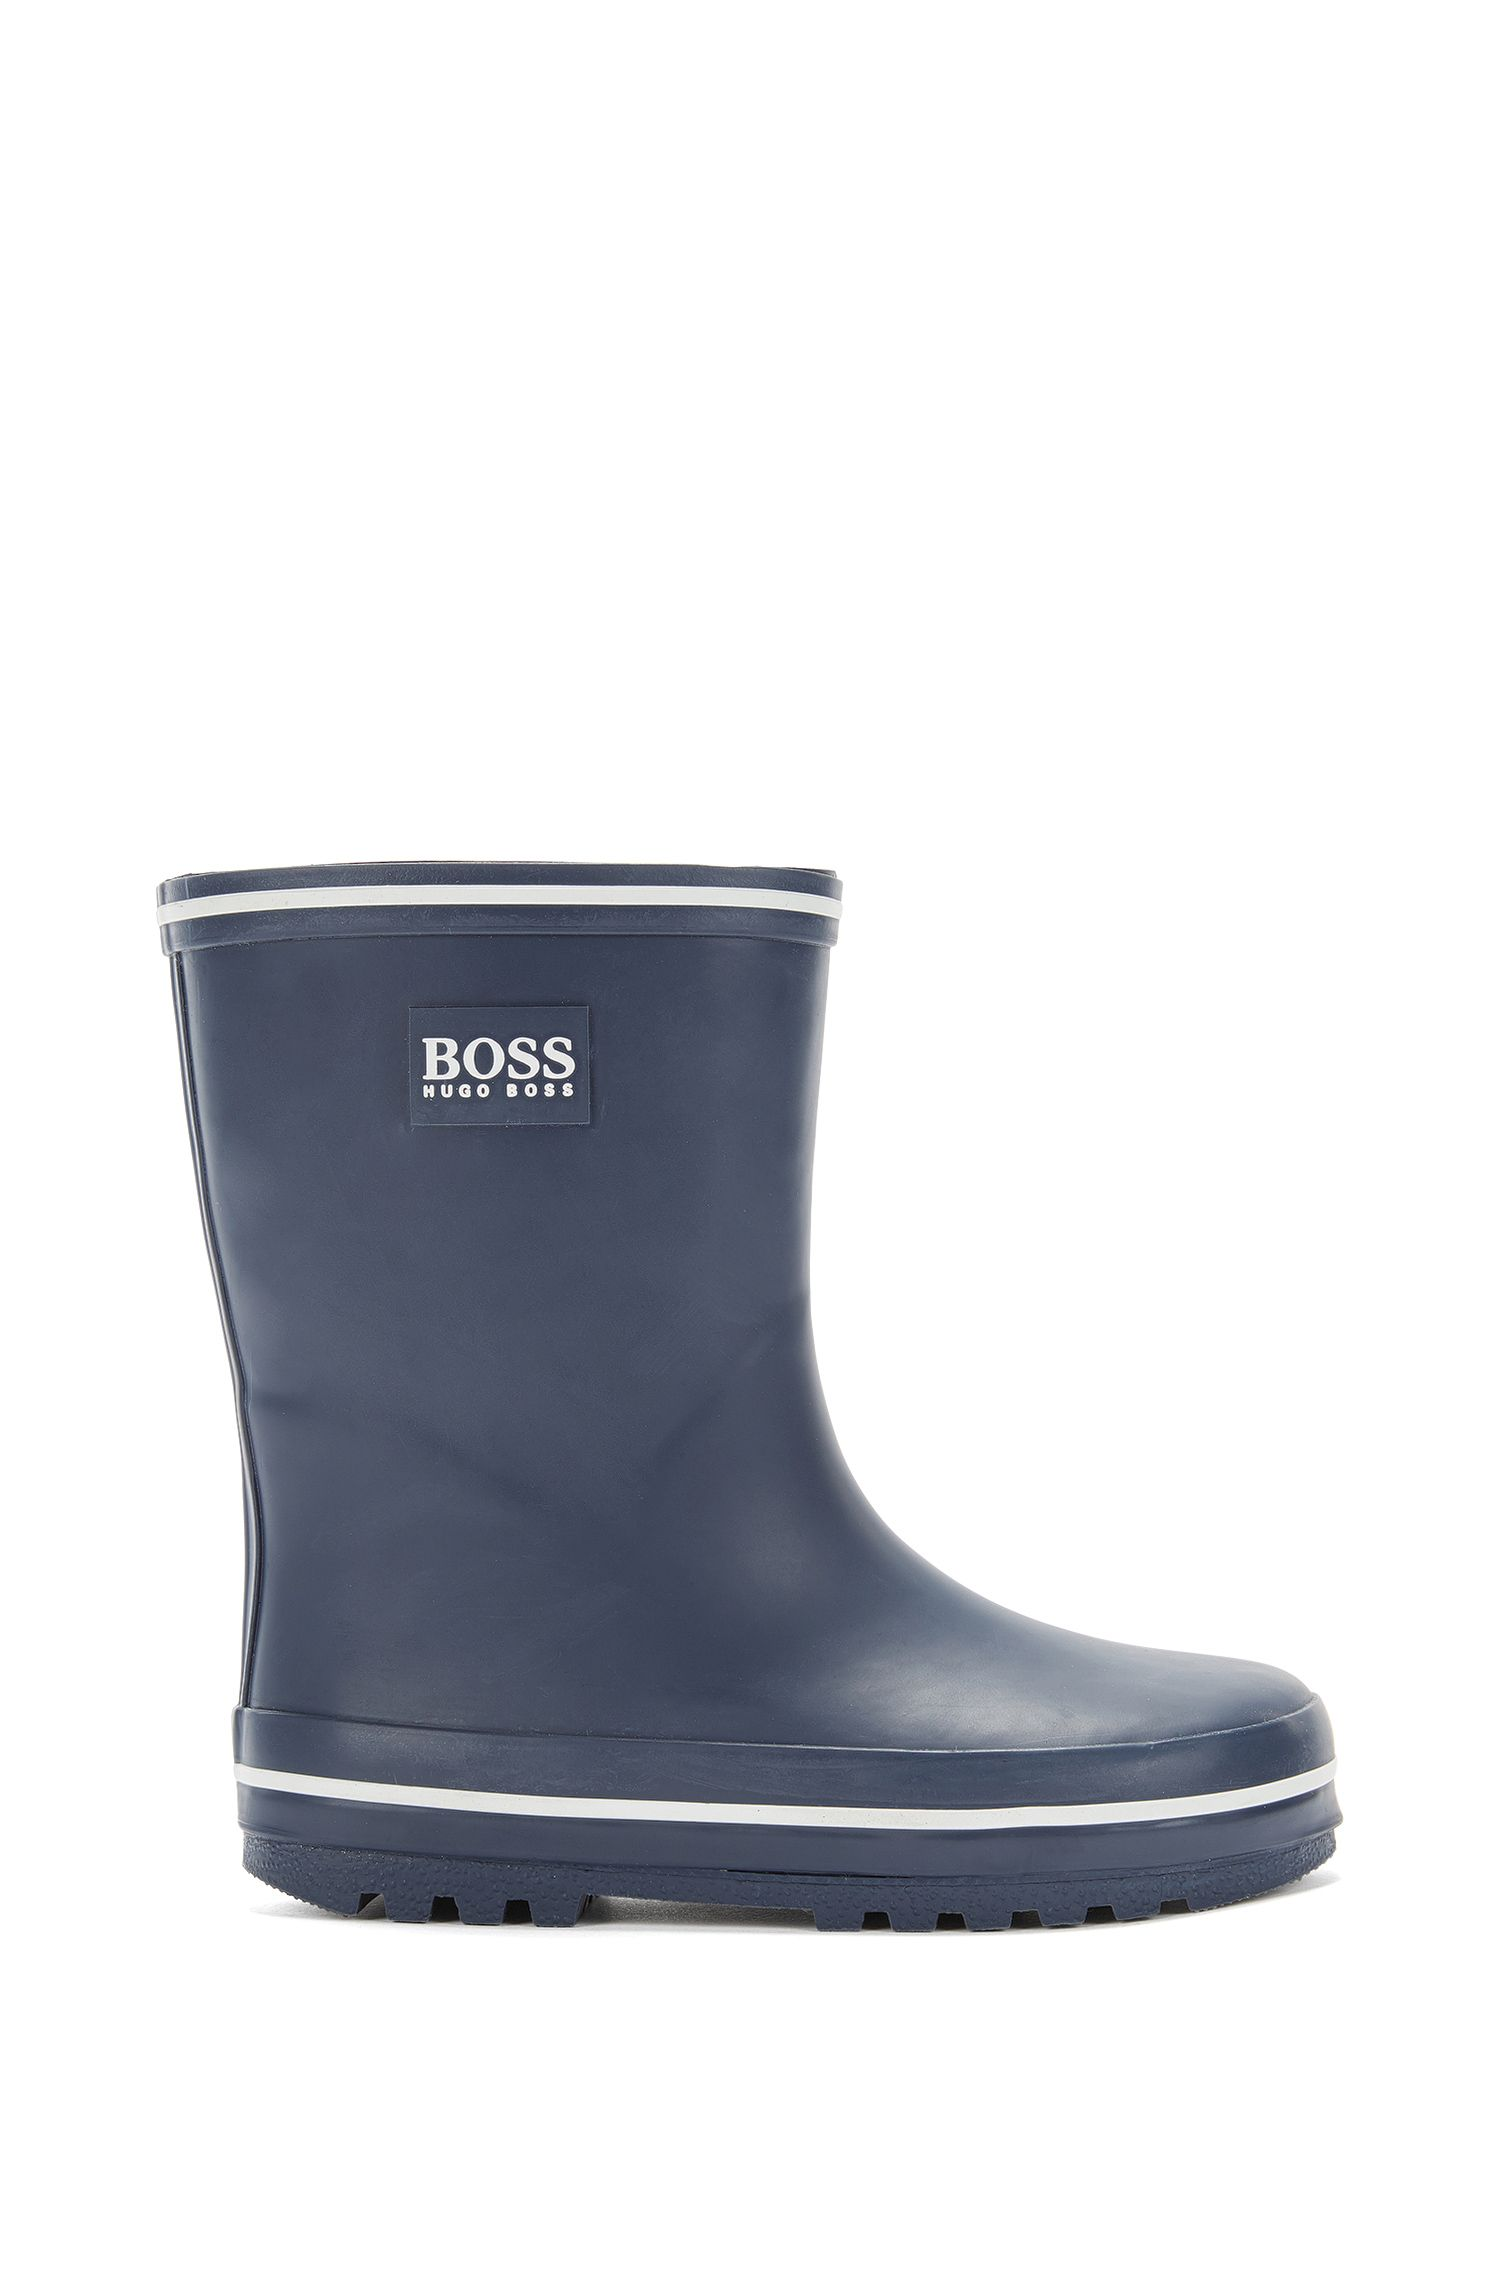 Kids' wellington boots in rubber